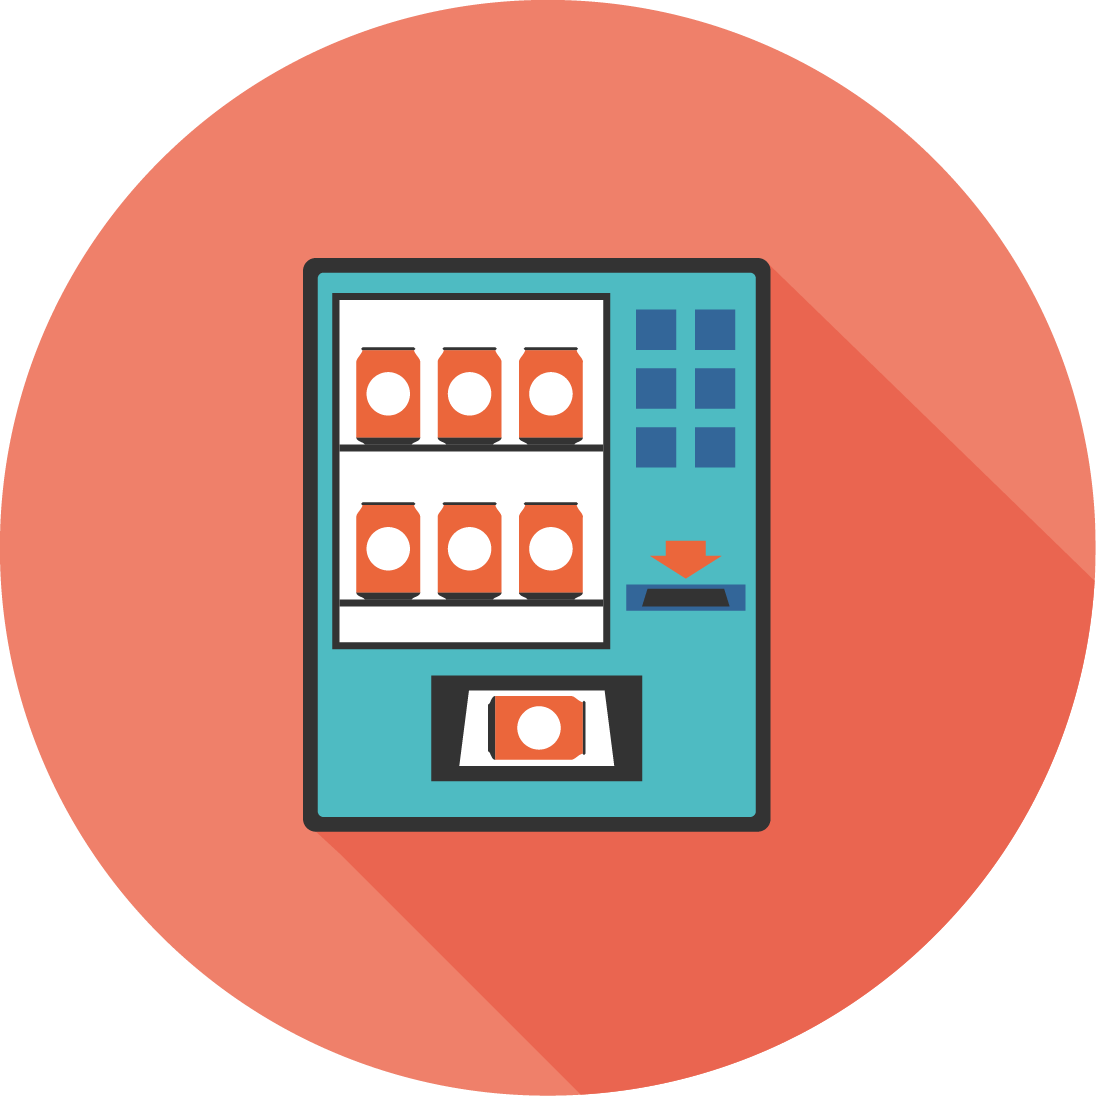 Buy It Supplies From Vending Machines - Circle Clipart (1096x1101), Png Download